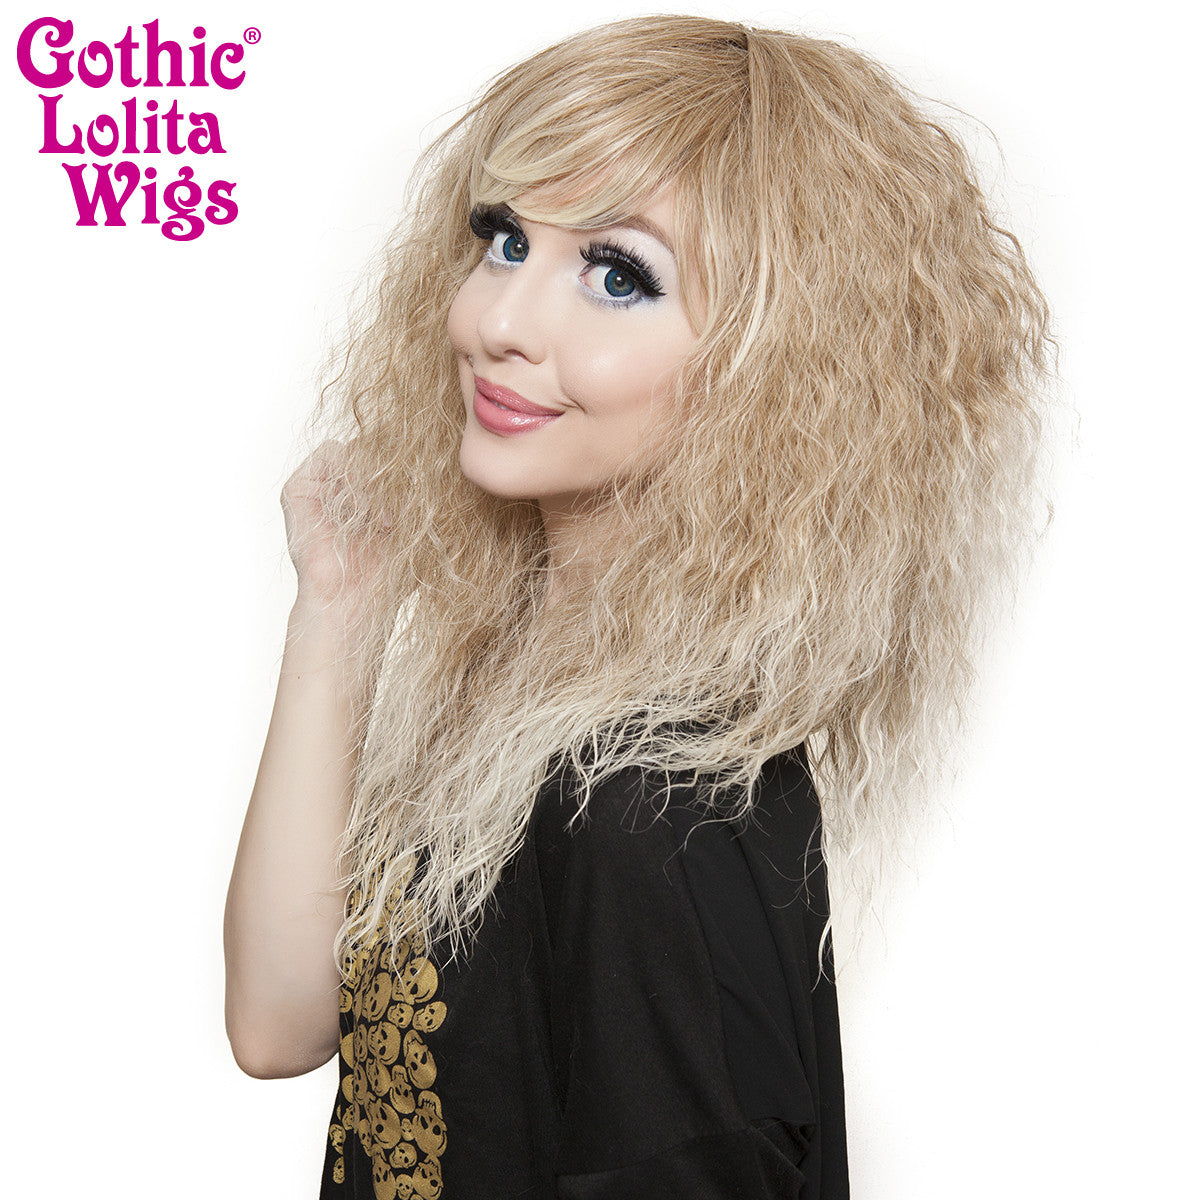 Gothic Lolita Wigs® <br> Rhapsody Short™ Collection - Blonde Fade -00893